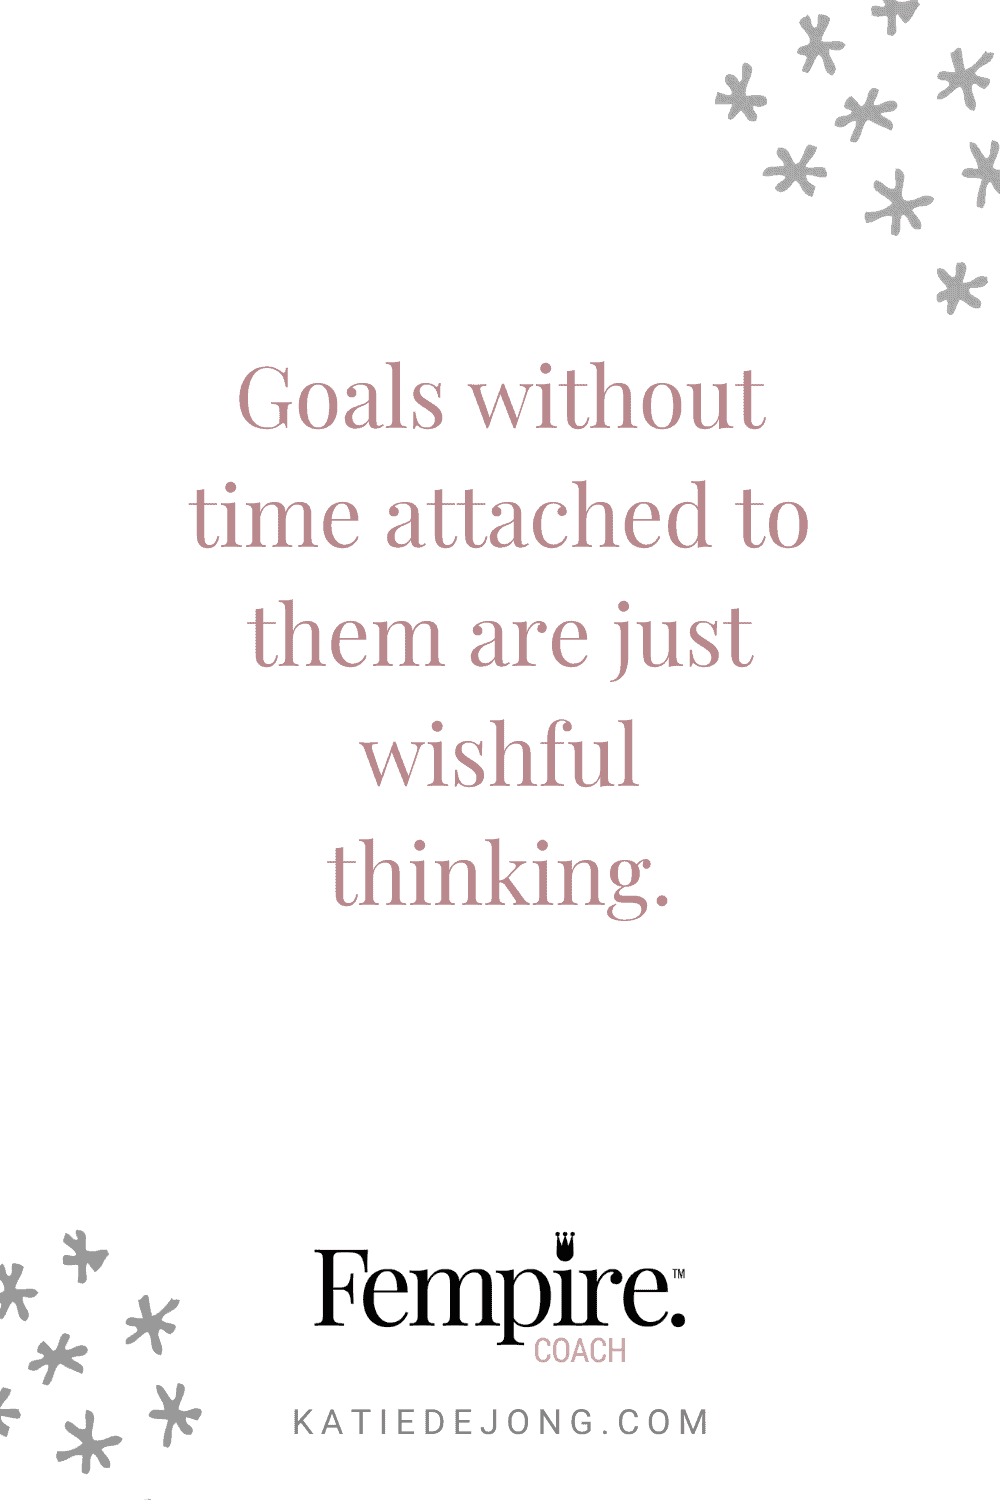 Business owners who plan and set goals succeed in business, always. An essential component of goal setting is time blocking - scheduling time to actually work on your goals. Without time blocking, your goals won't be achieved. Read on to discover how you can apply goal setting and time blocking to achieve big growth in your business. #fempire #fempirecoach #entrepreneur #ladyboss #womeninbusiness #businesswoman #businesscoach #solopreneur #success #successmindset #workfromhome #mompreneur #mumpreneur #laptoplifestyle  #goals #goalsetting #90daygoals